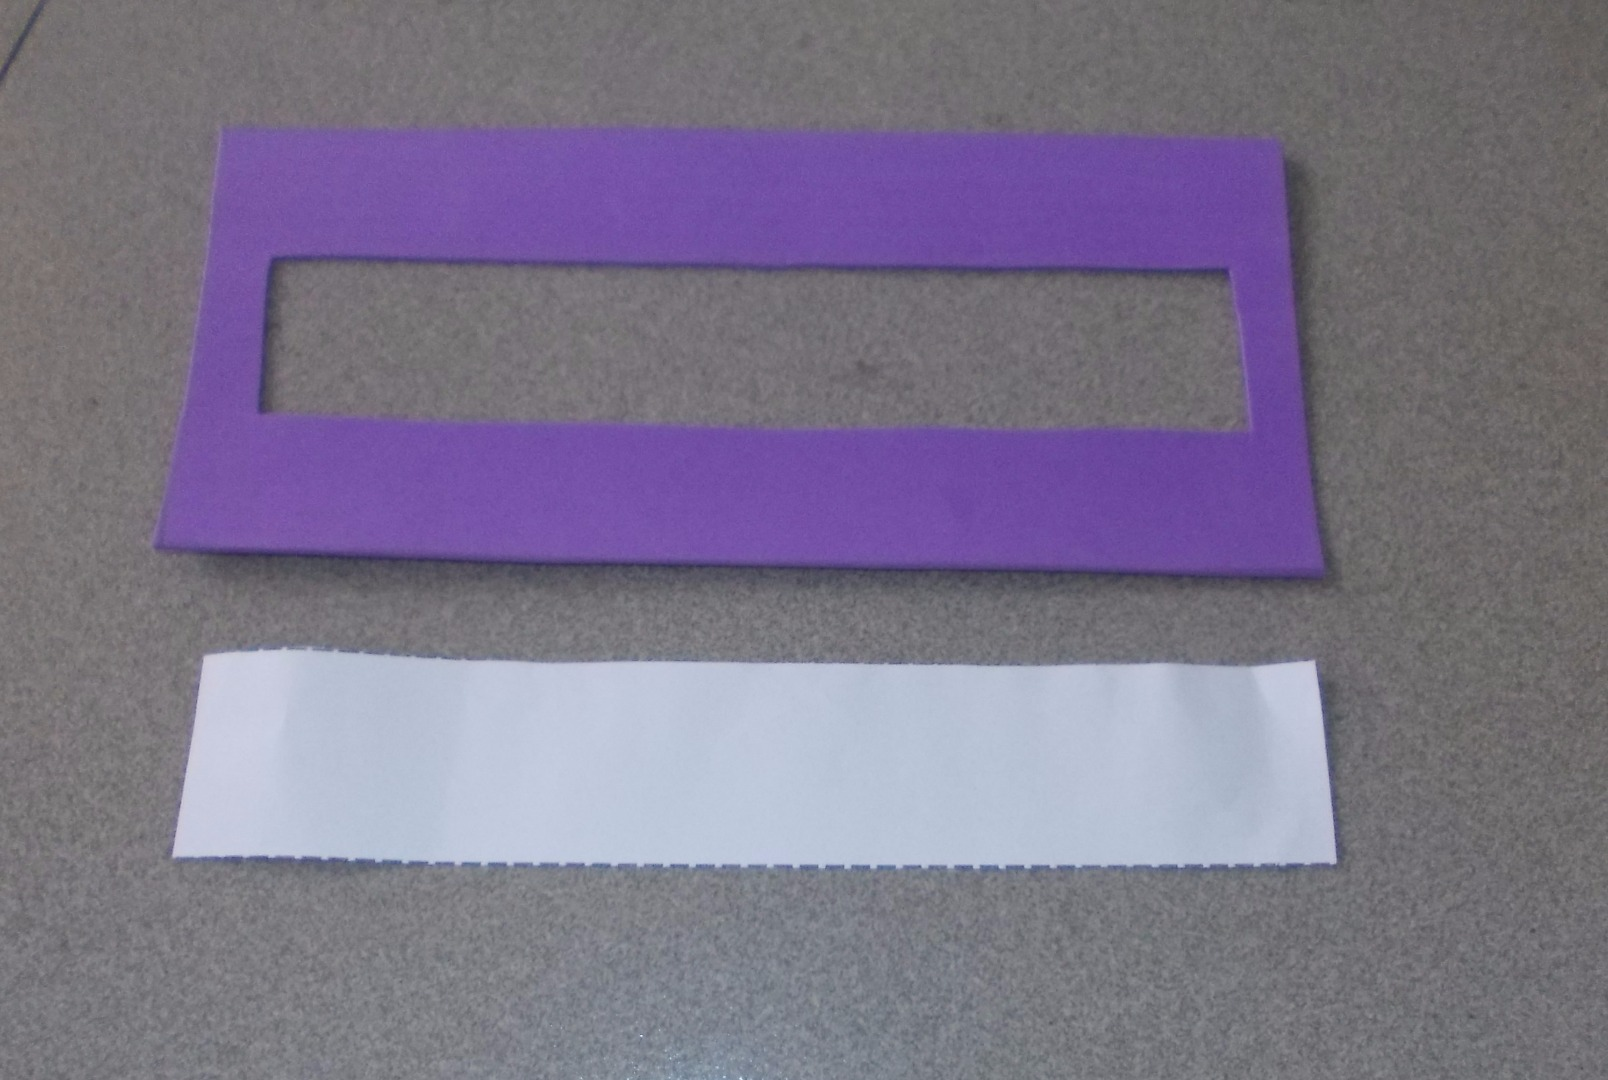 Picture of Cut the Small Rectangle Inside to Glue the Glass Paper Later.